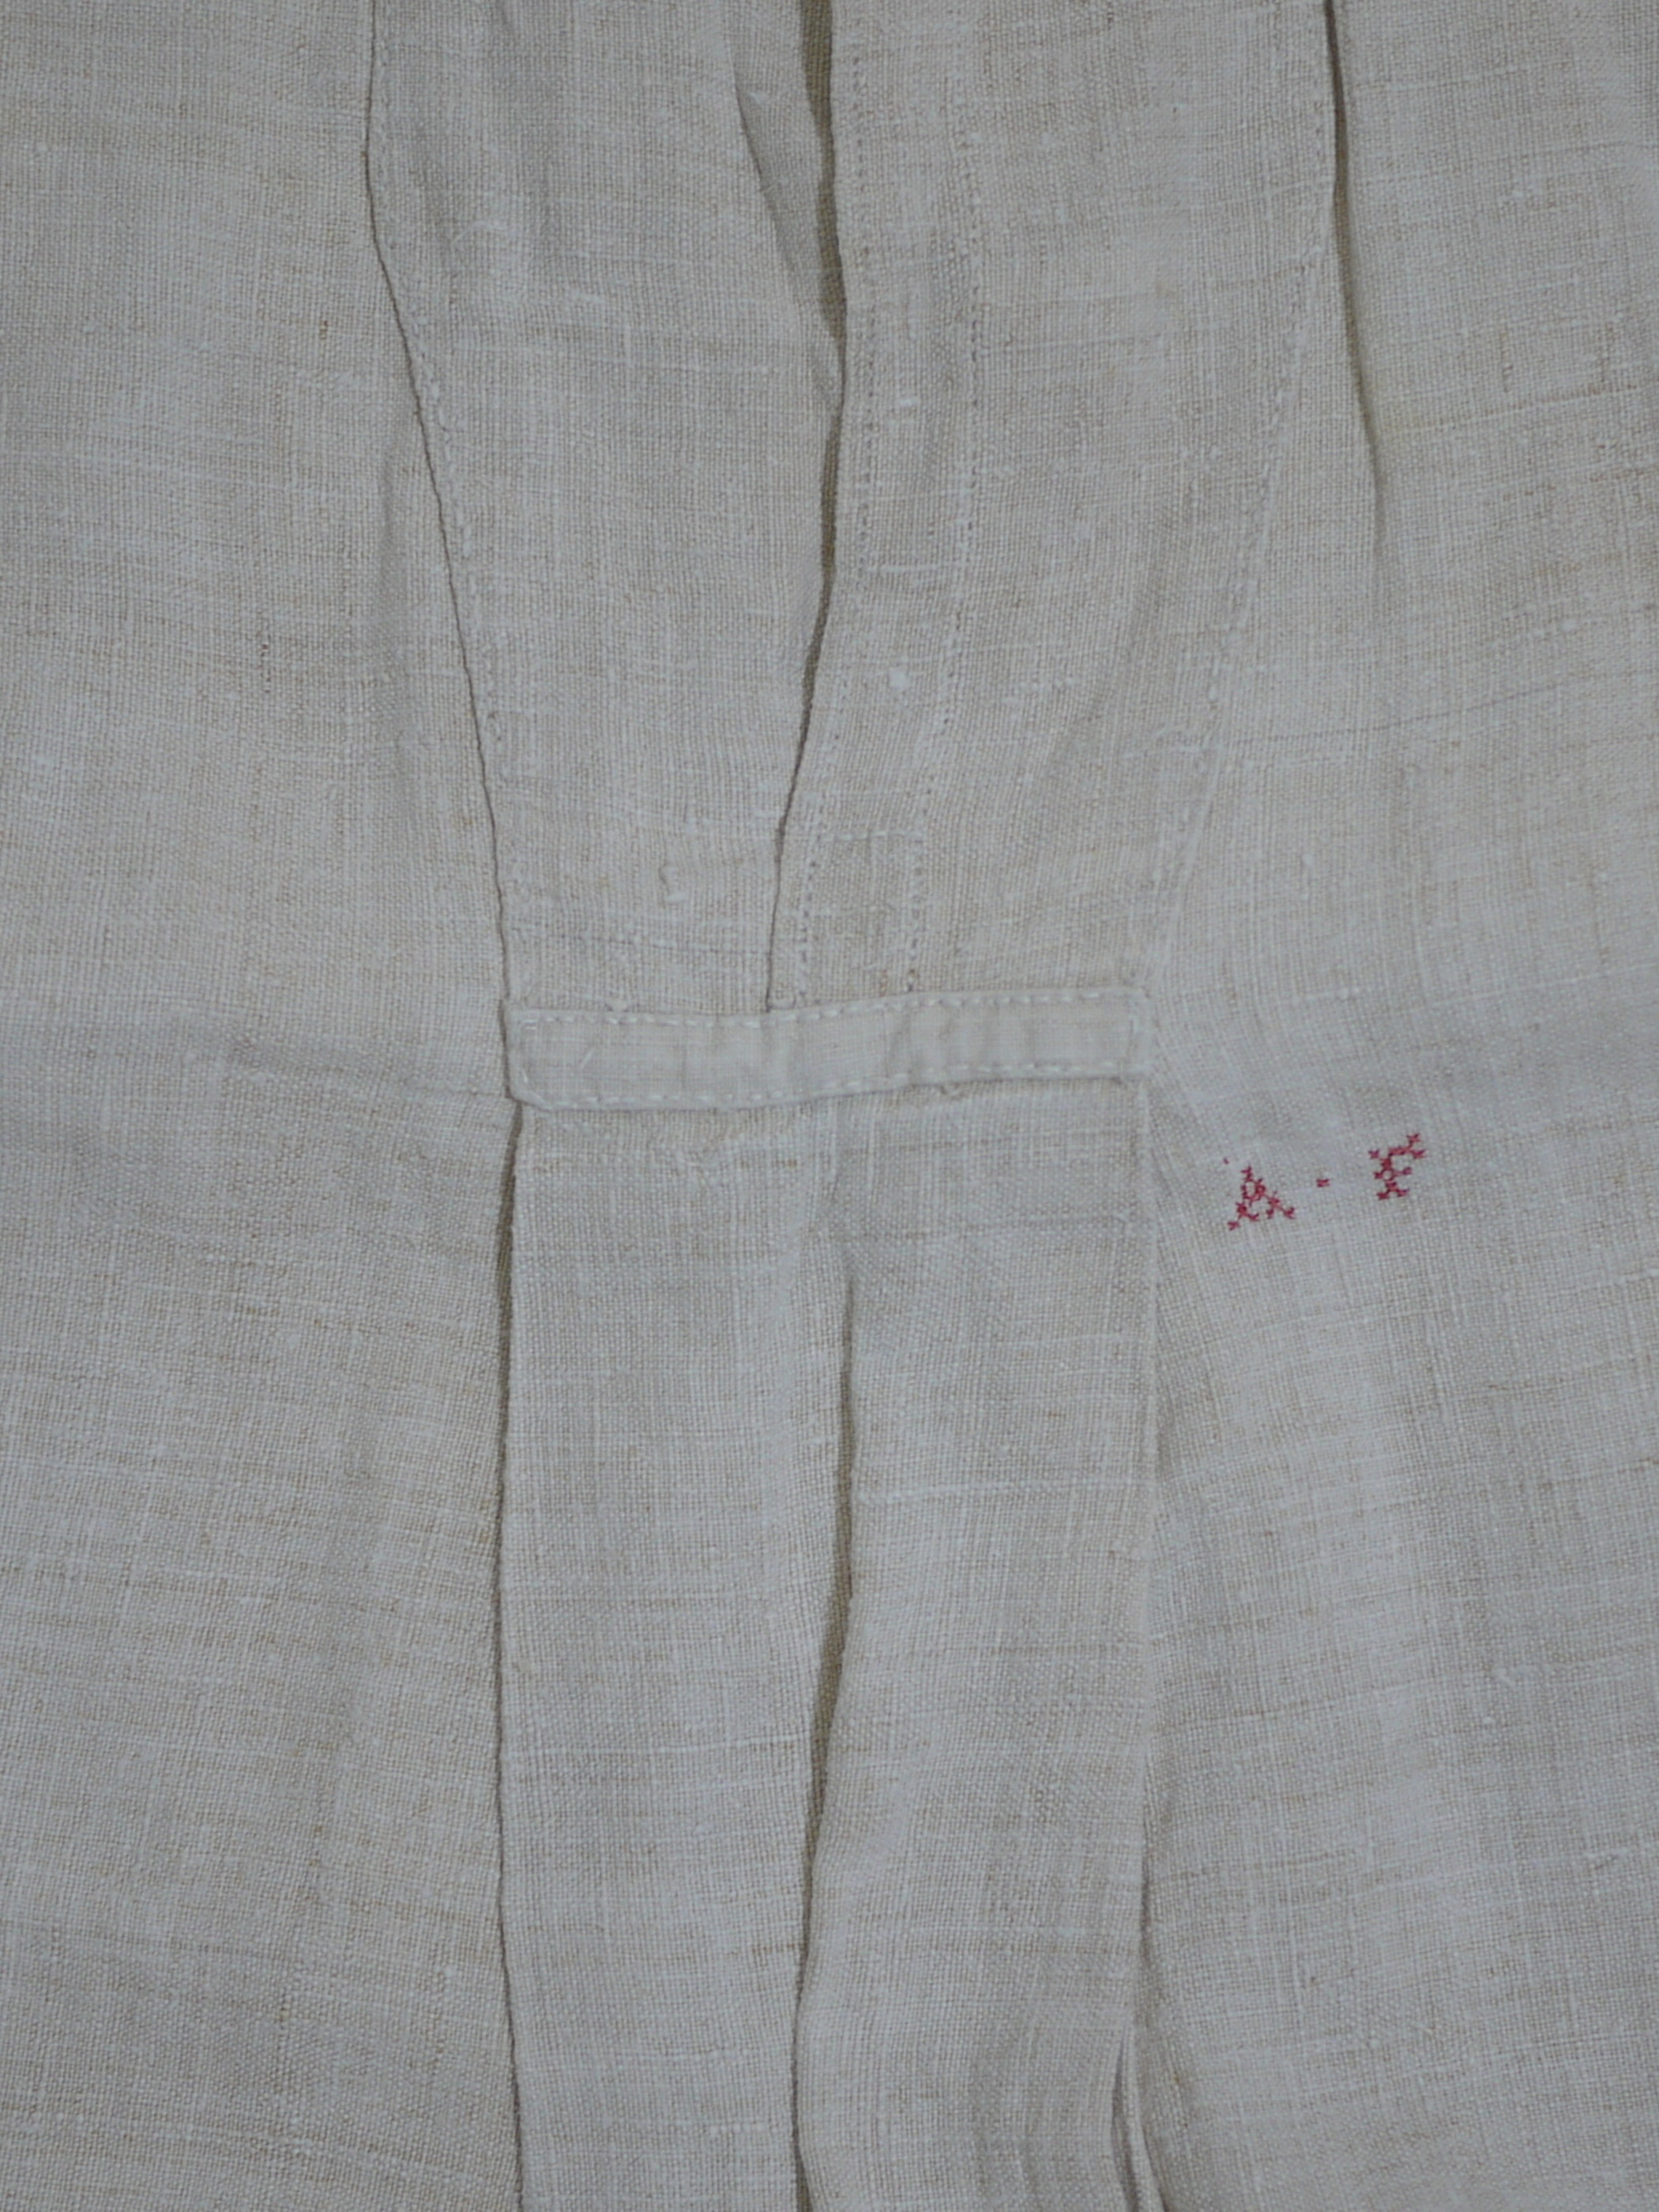 1910~20's French linen smock